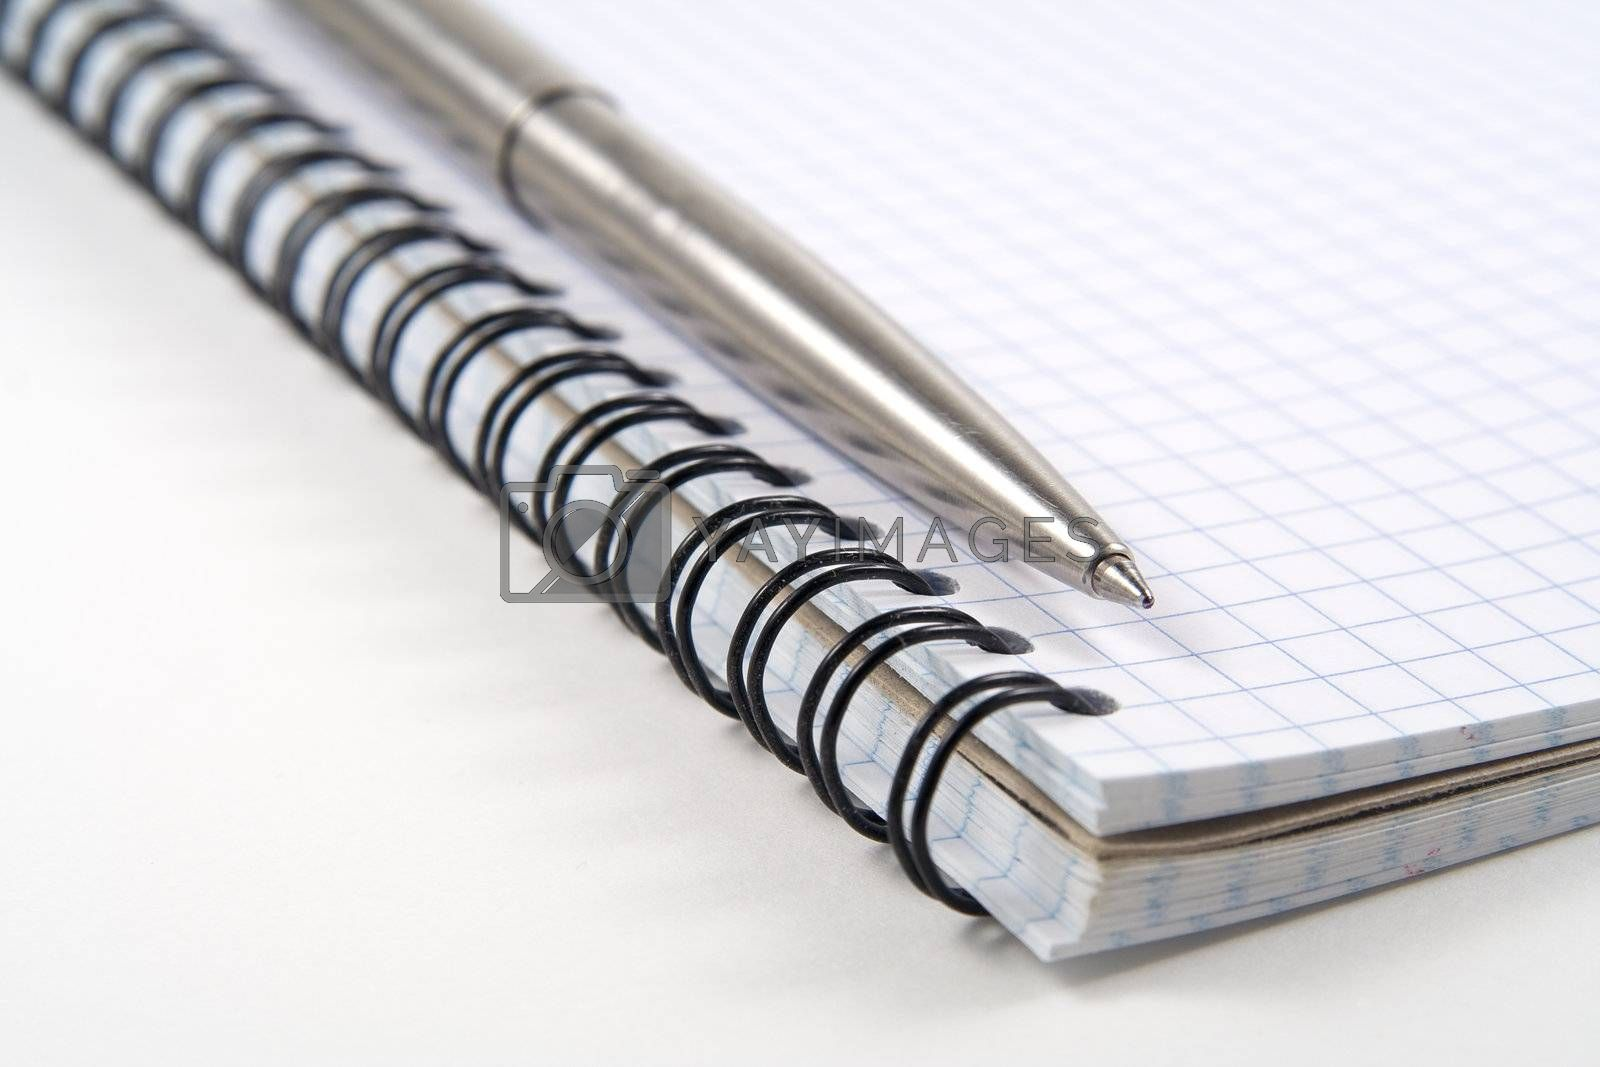 Pen on spiral notebook on white background by serpl